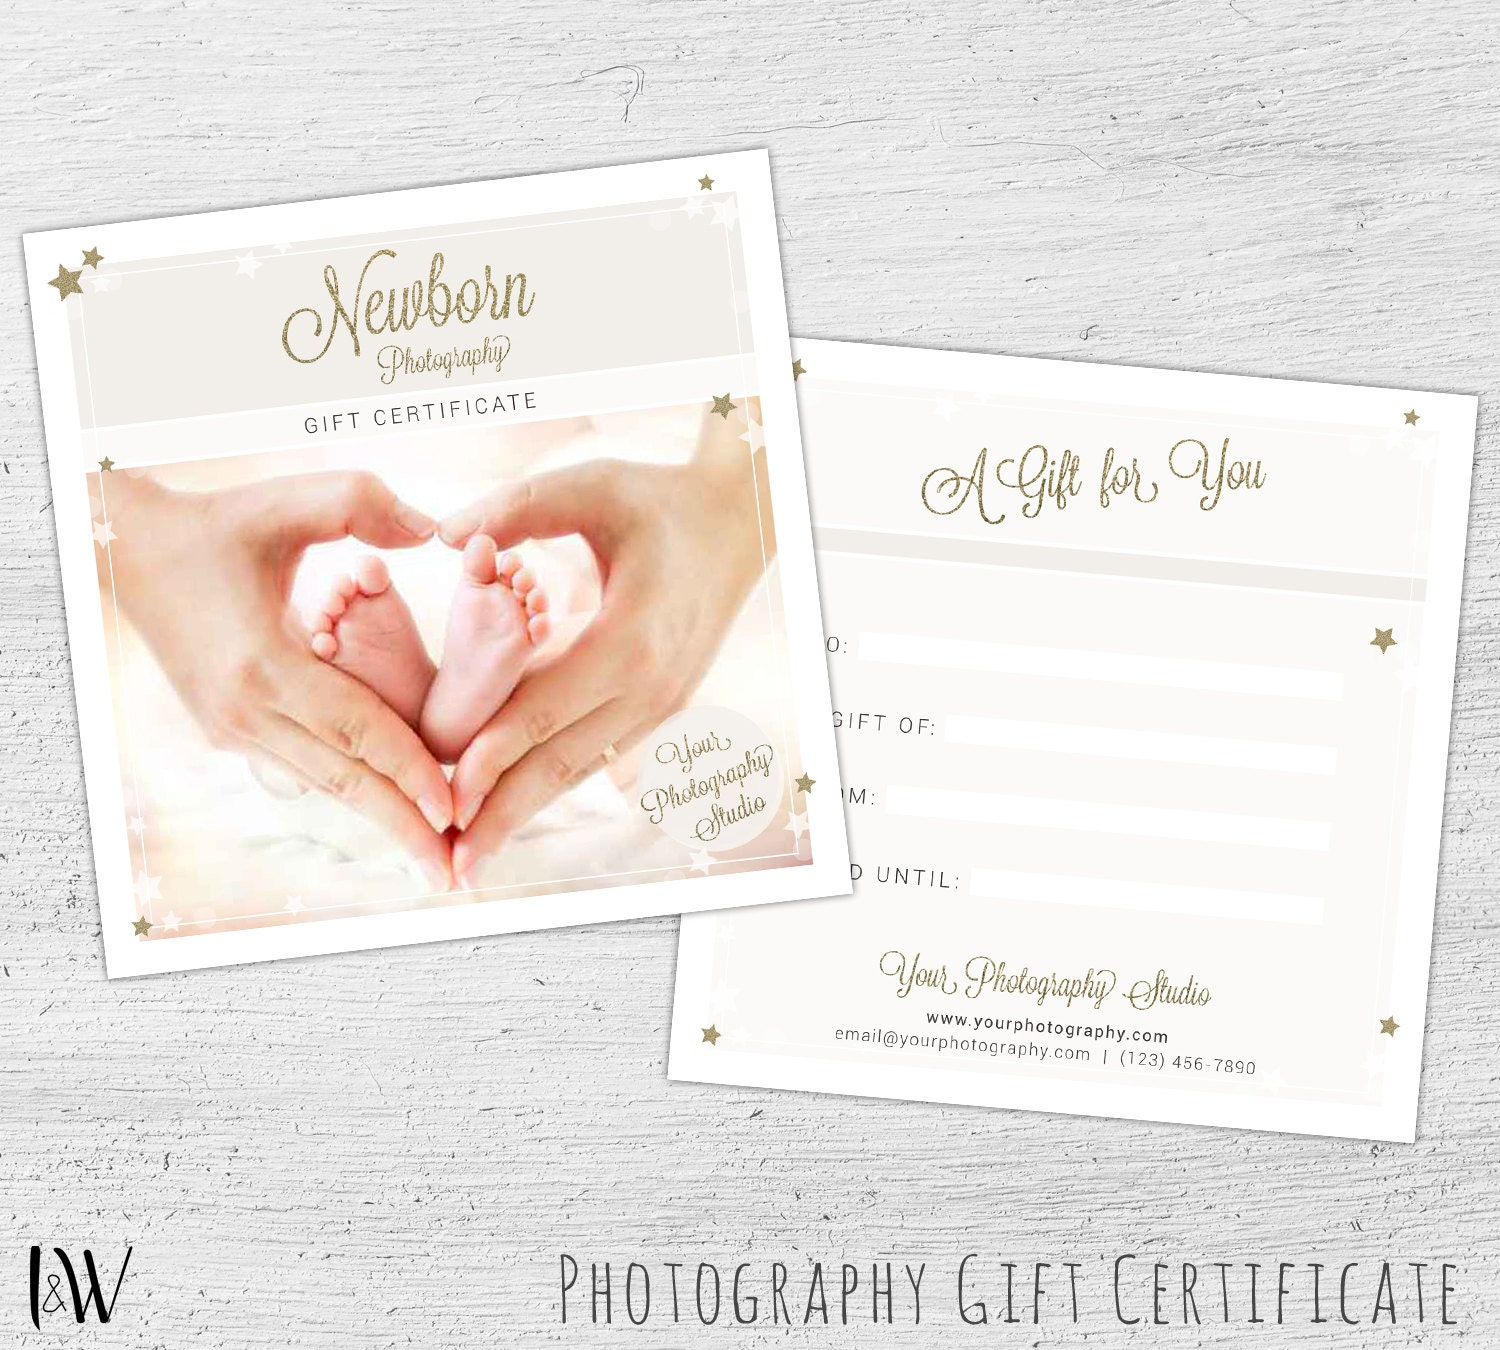 Photography gift certificate photoshop template for zoom yelopaper Image collections